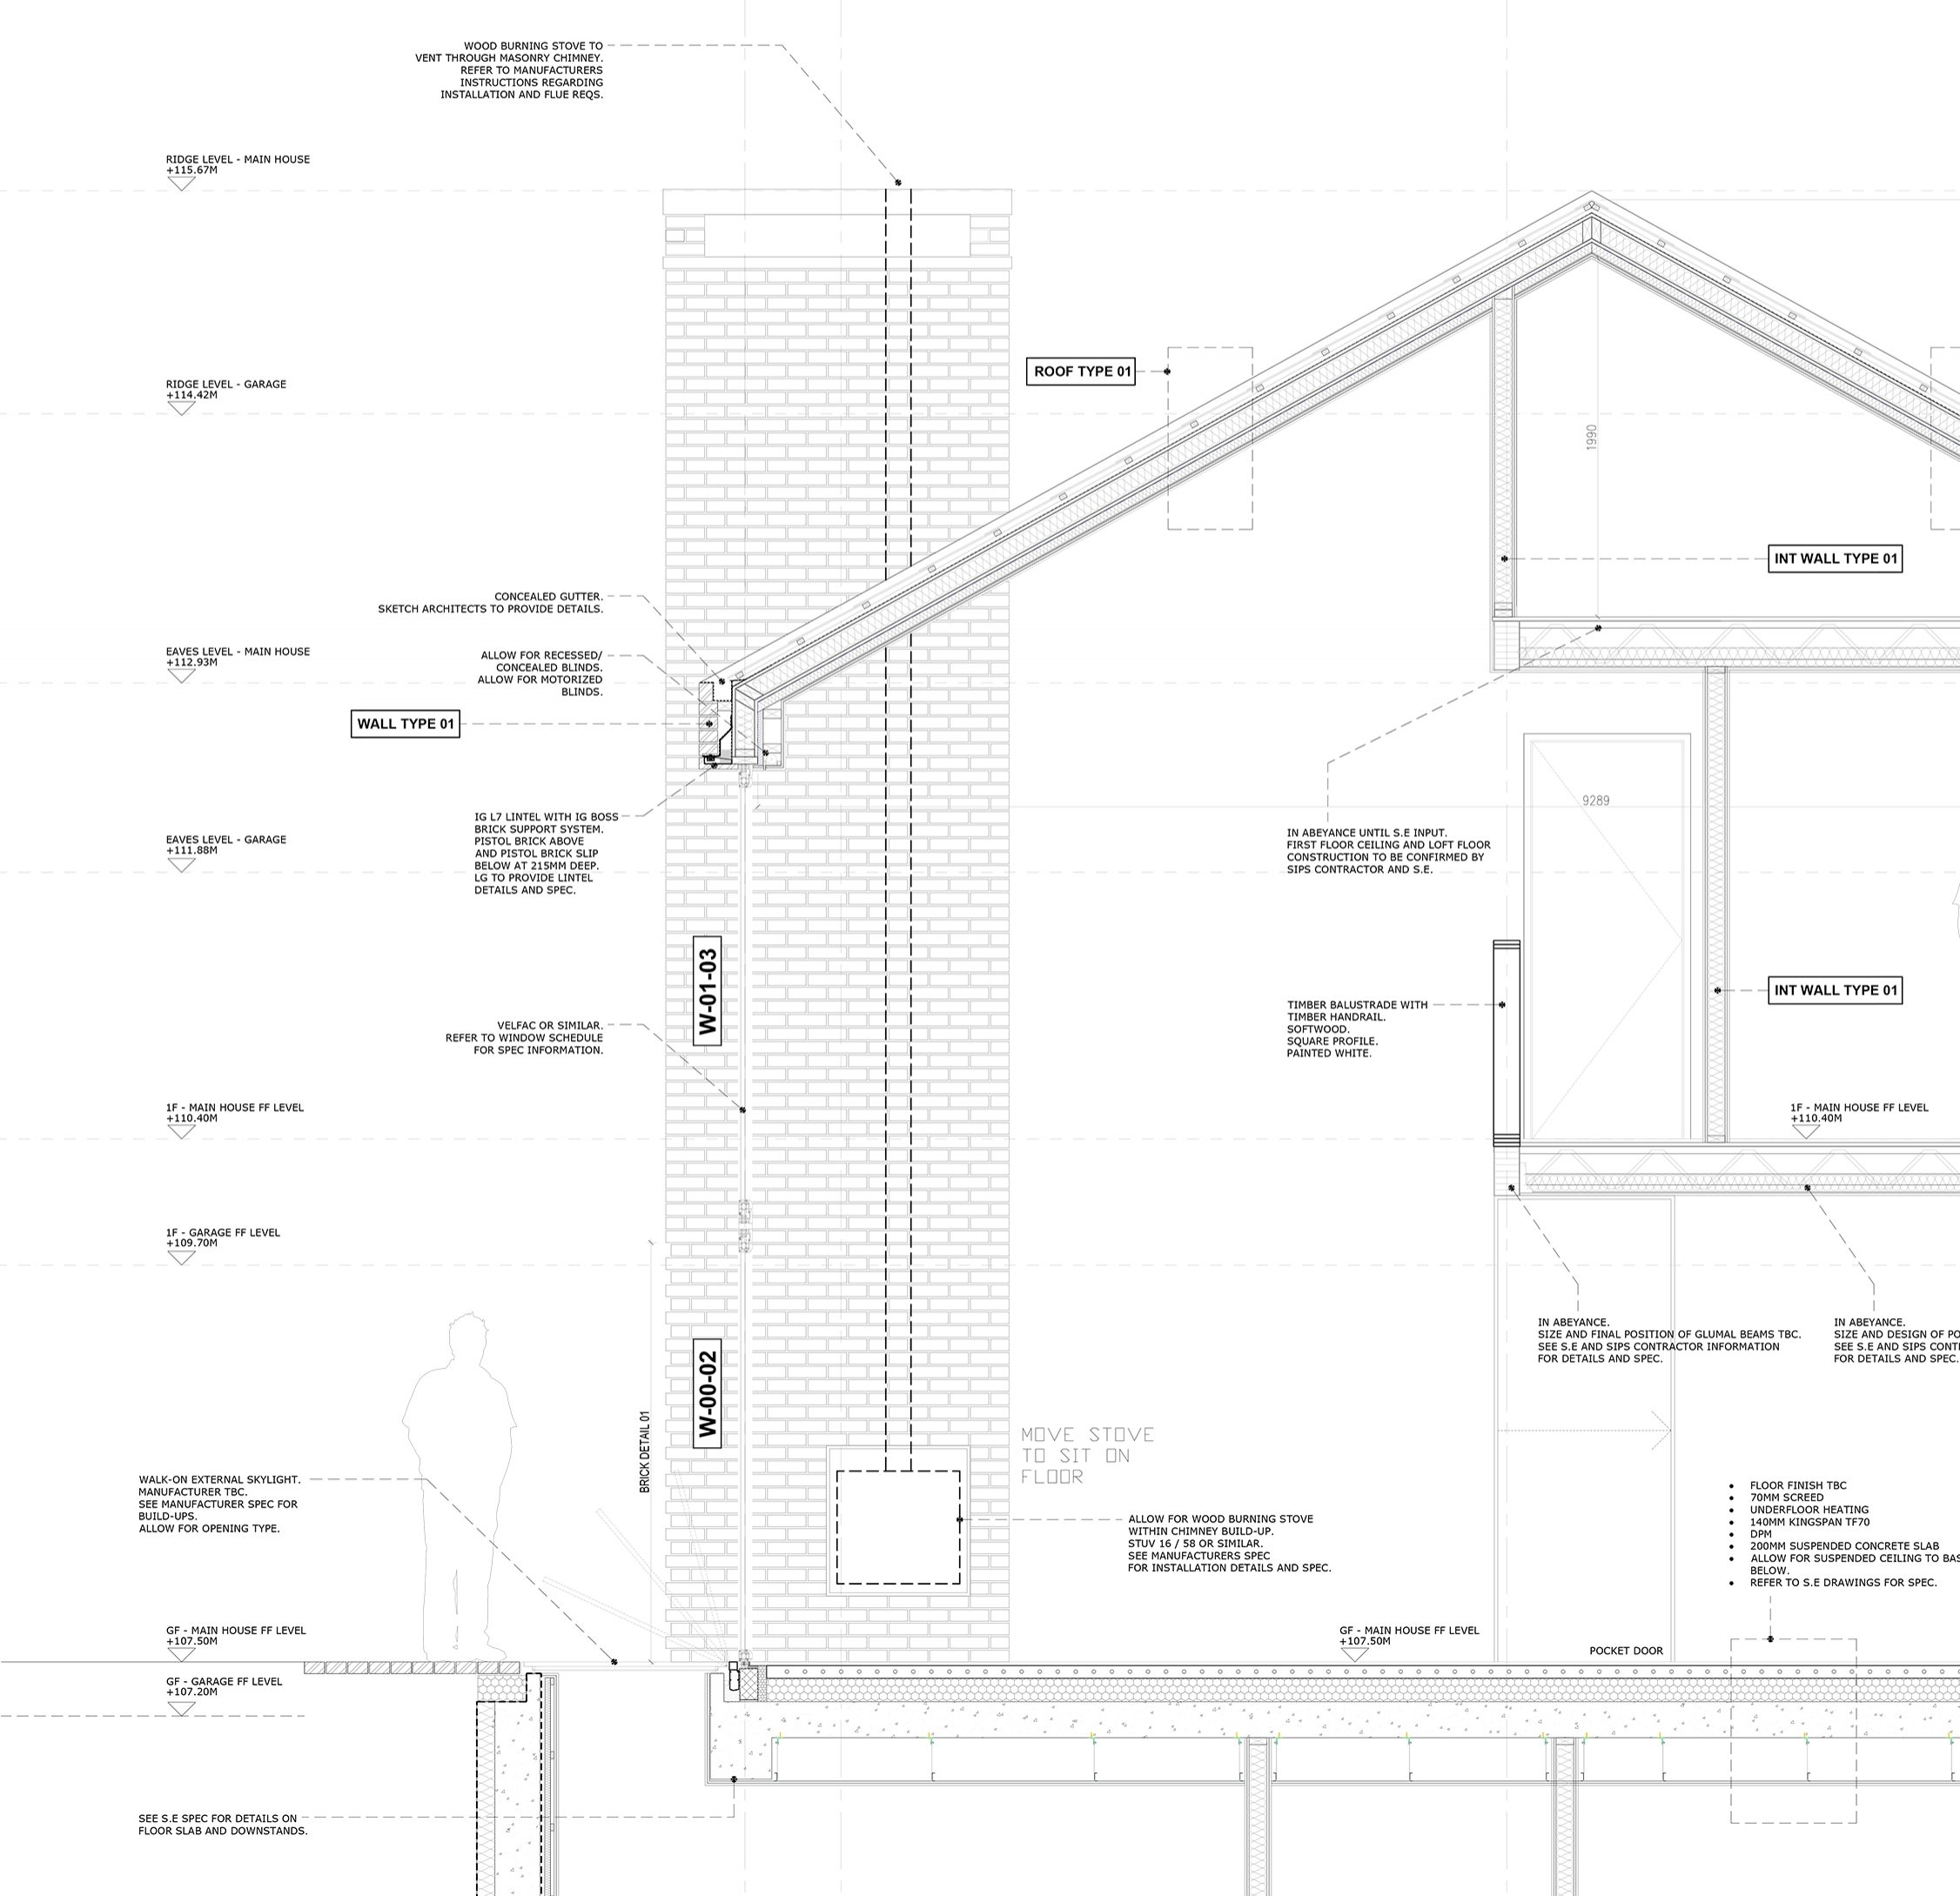 1042 - 18 Woodside Road - Building Regs Plans 21.02.2017-L(20)-204 PROPOSED SECTION C-C _ 01 @ 1_20 (2) cropped.jpg